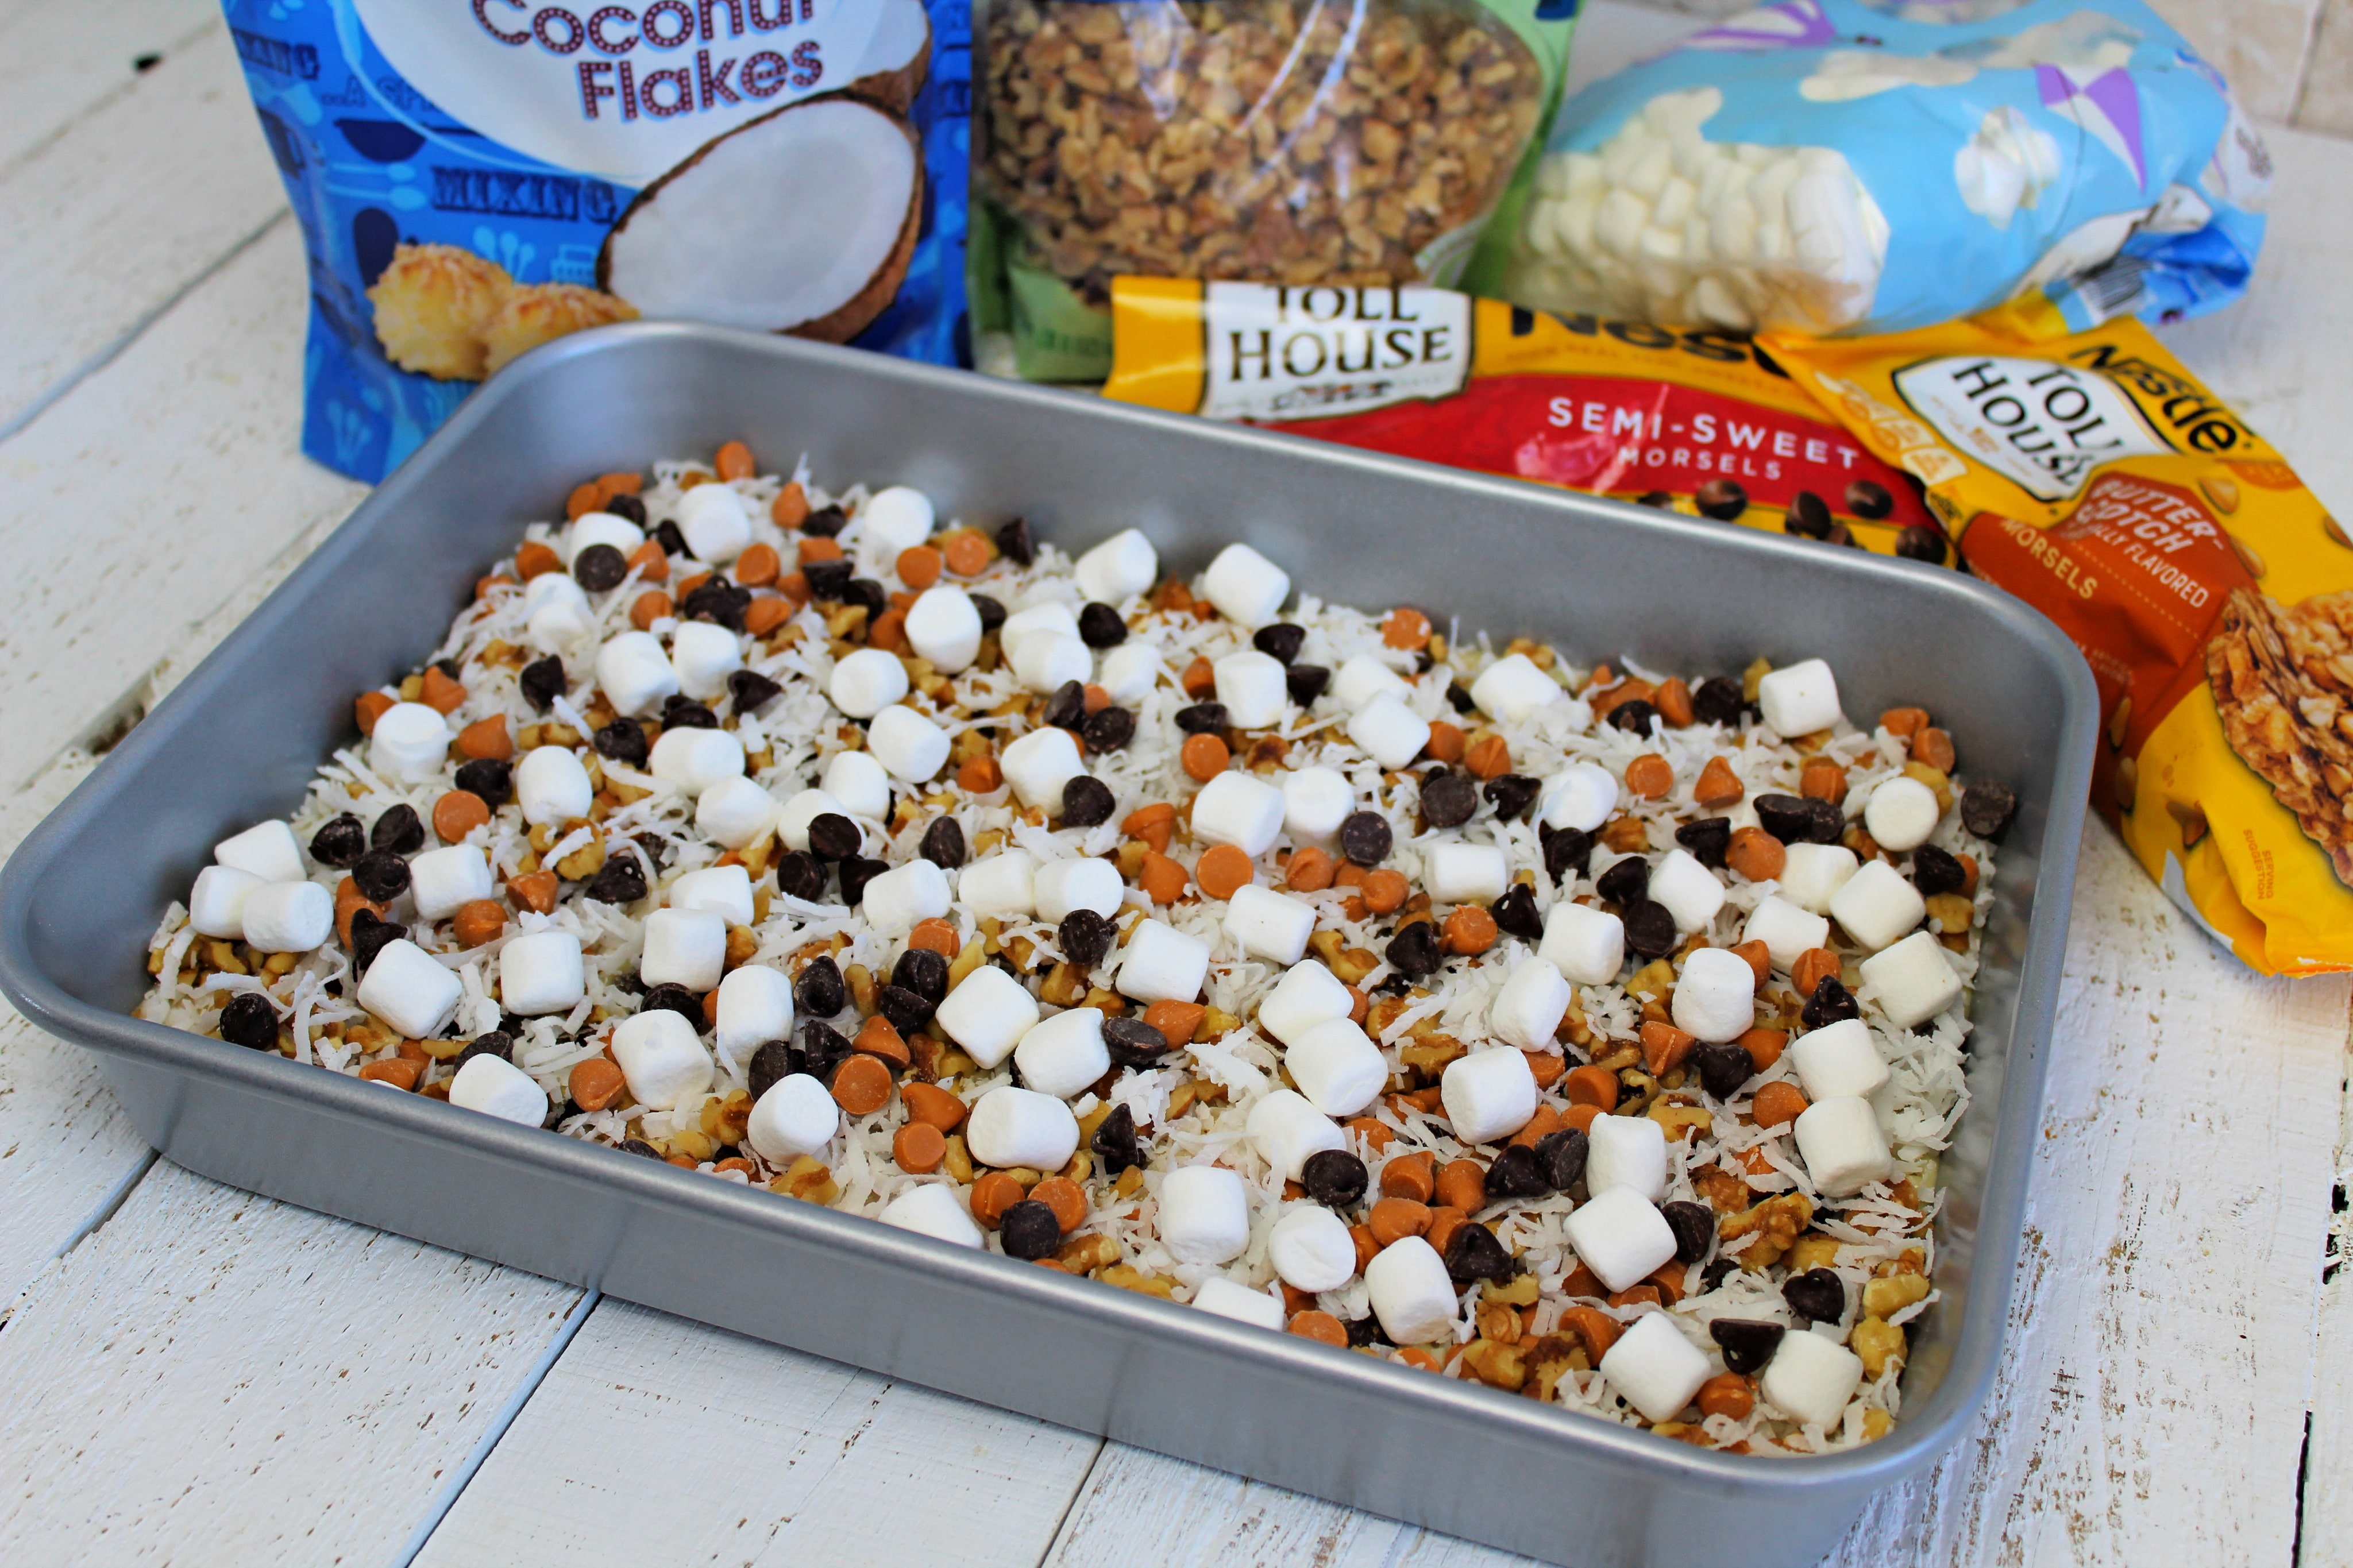 Sprinkle coconut, marshmallows, chocolate chips and butterscotch chips over crust.